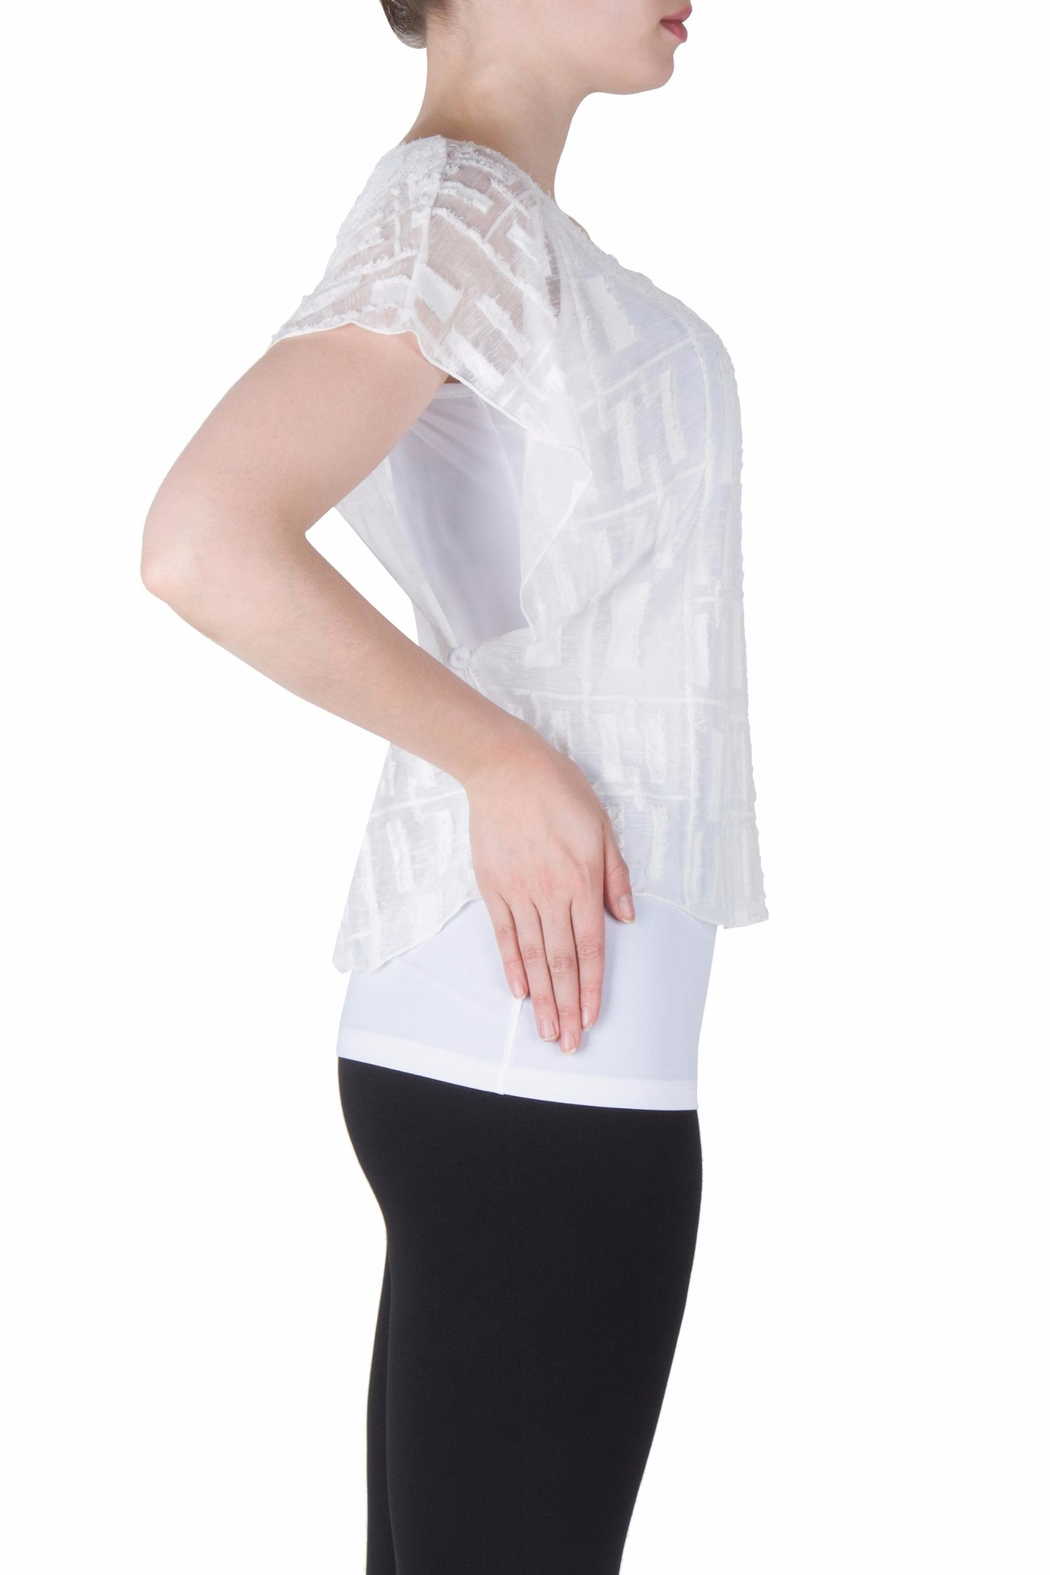 Joseph Ribkoff Fitted Layer Top - Back Cropped Image